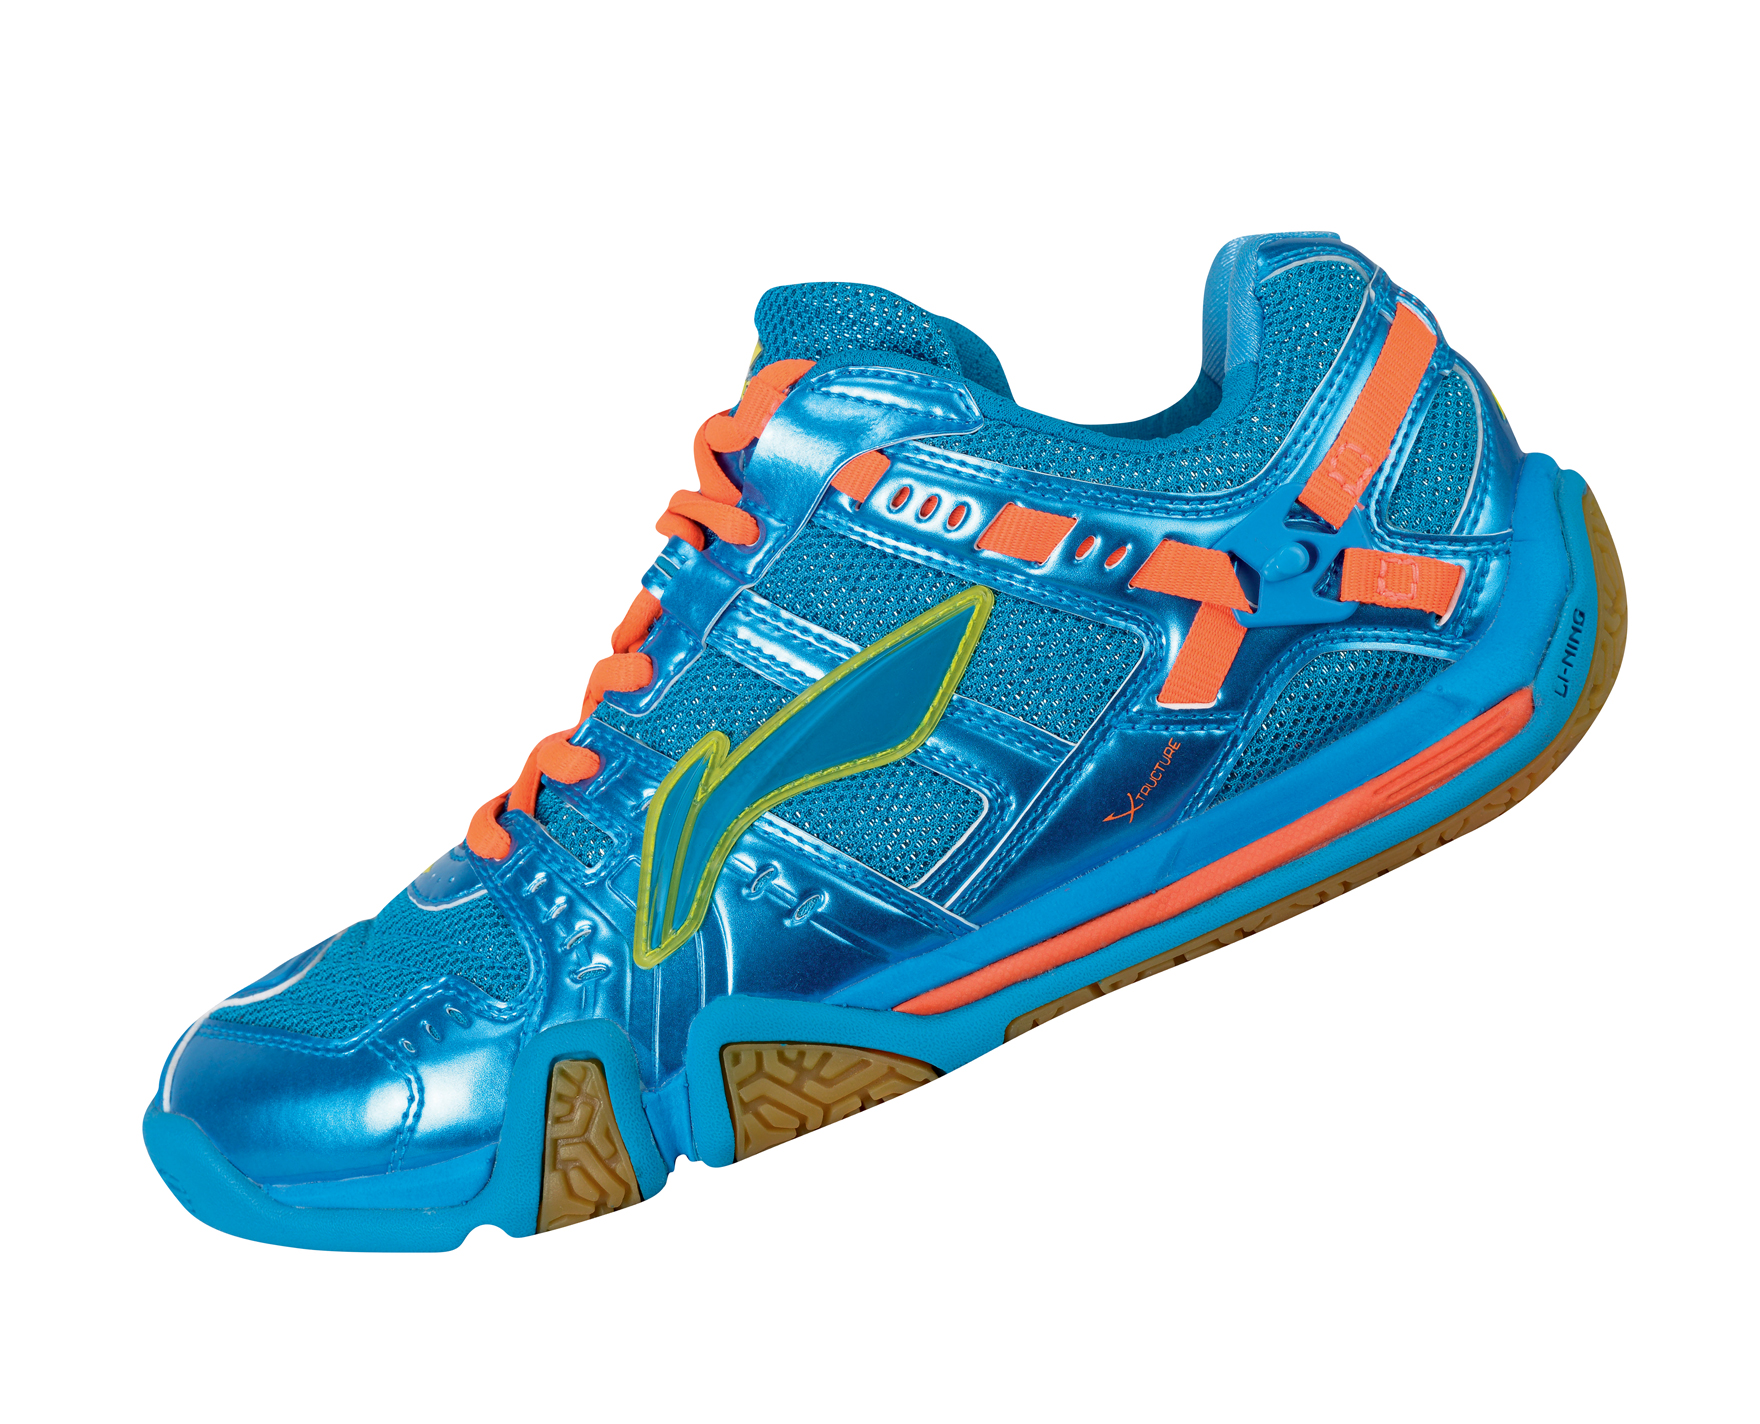 0fbd1fda5 Women s Badminton Shoes  BLU  AYAJ008-2  AYAJ008-2